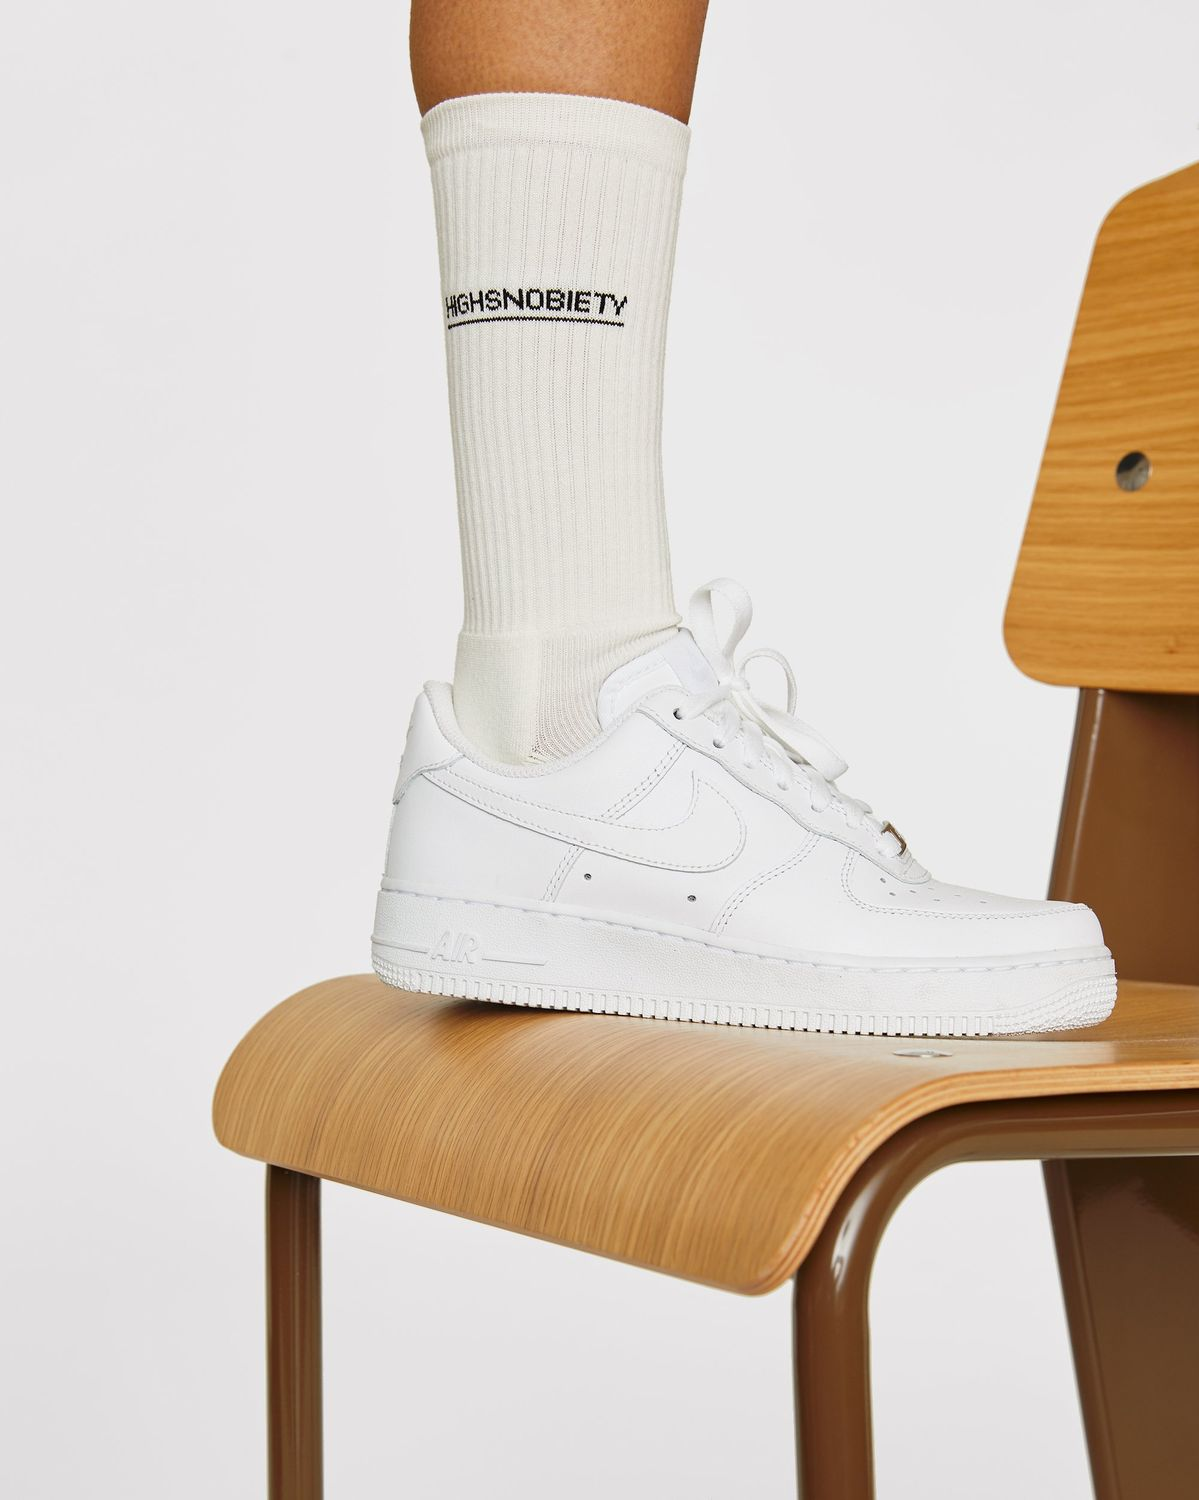 Highsnobiety Staples - Socks White - Image 2